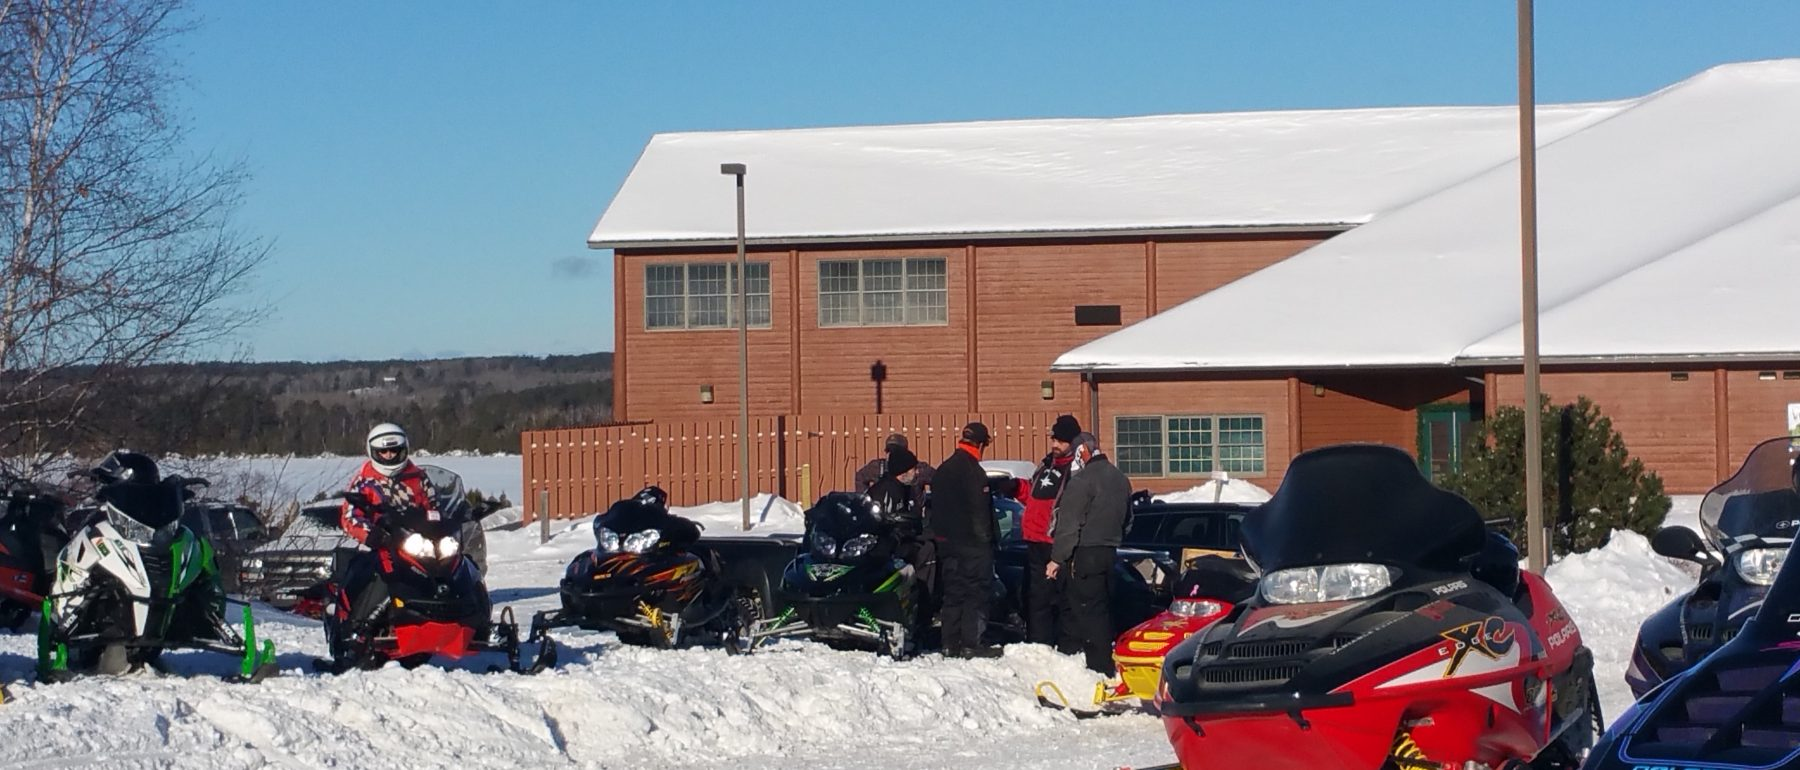 snowmobiles lined up in font of Grand Ely Lodge